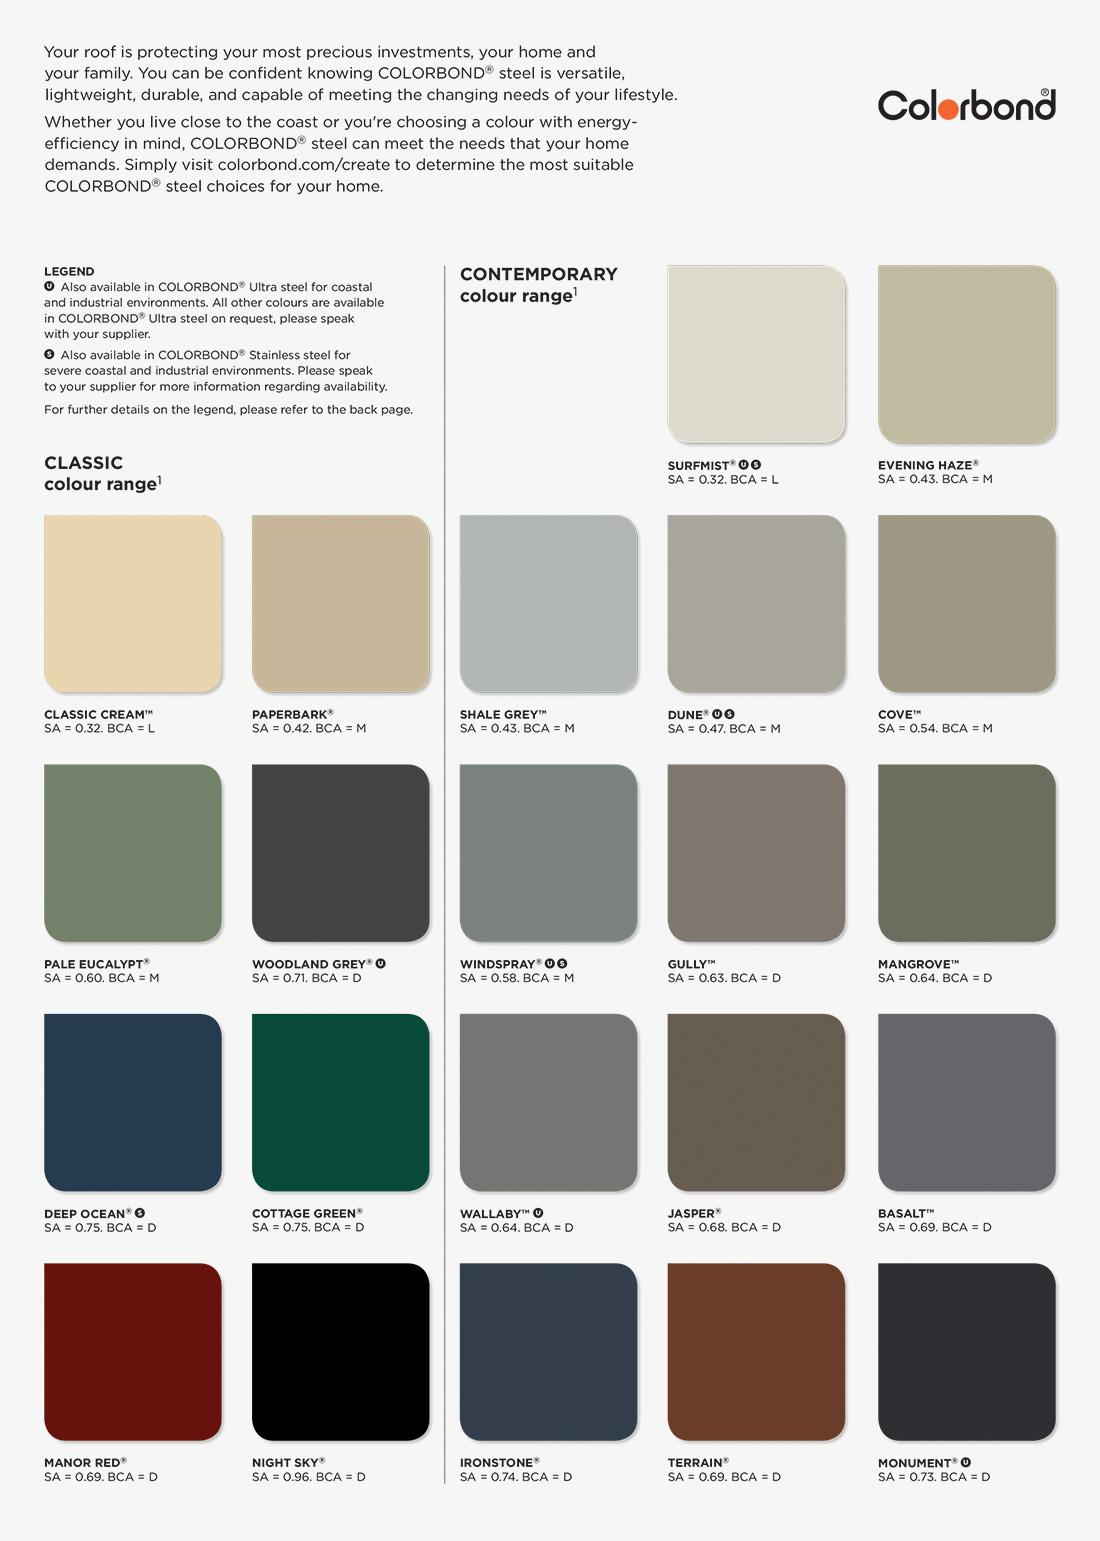 COLORBOND_steel_Colours_for_your_home_colour_chart-3.jpg